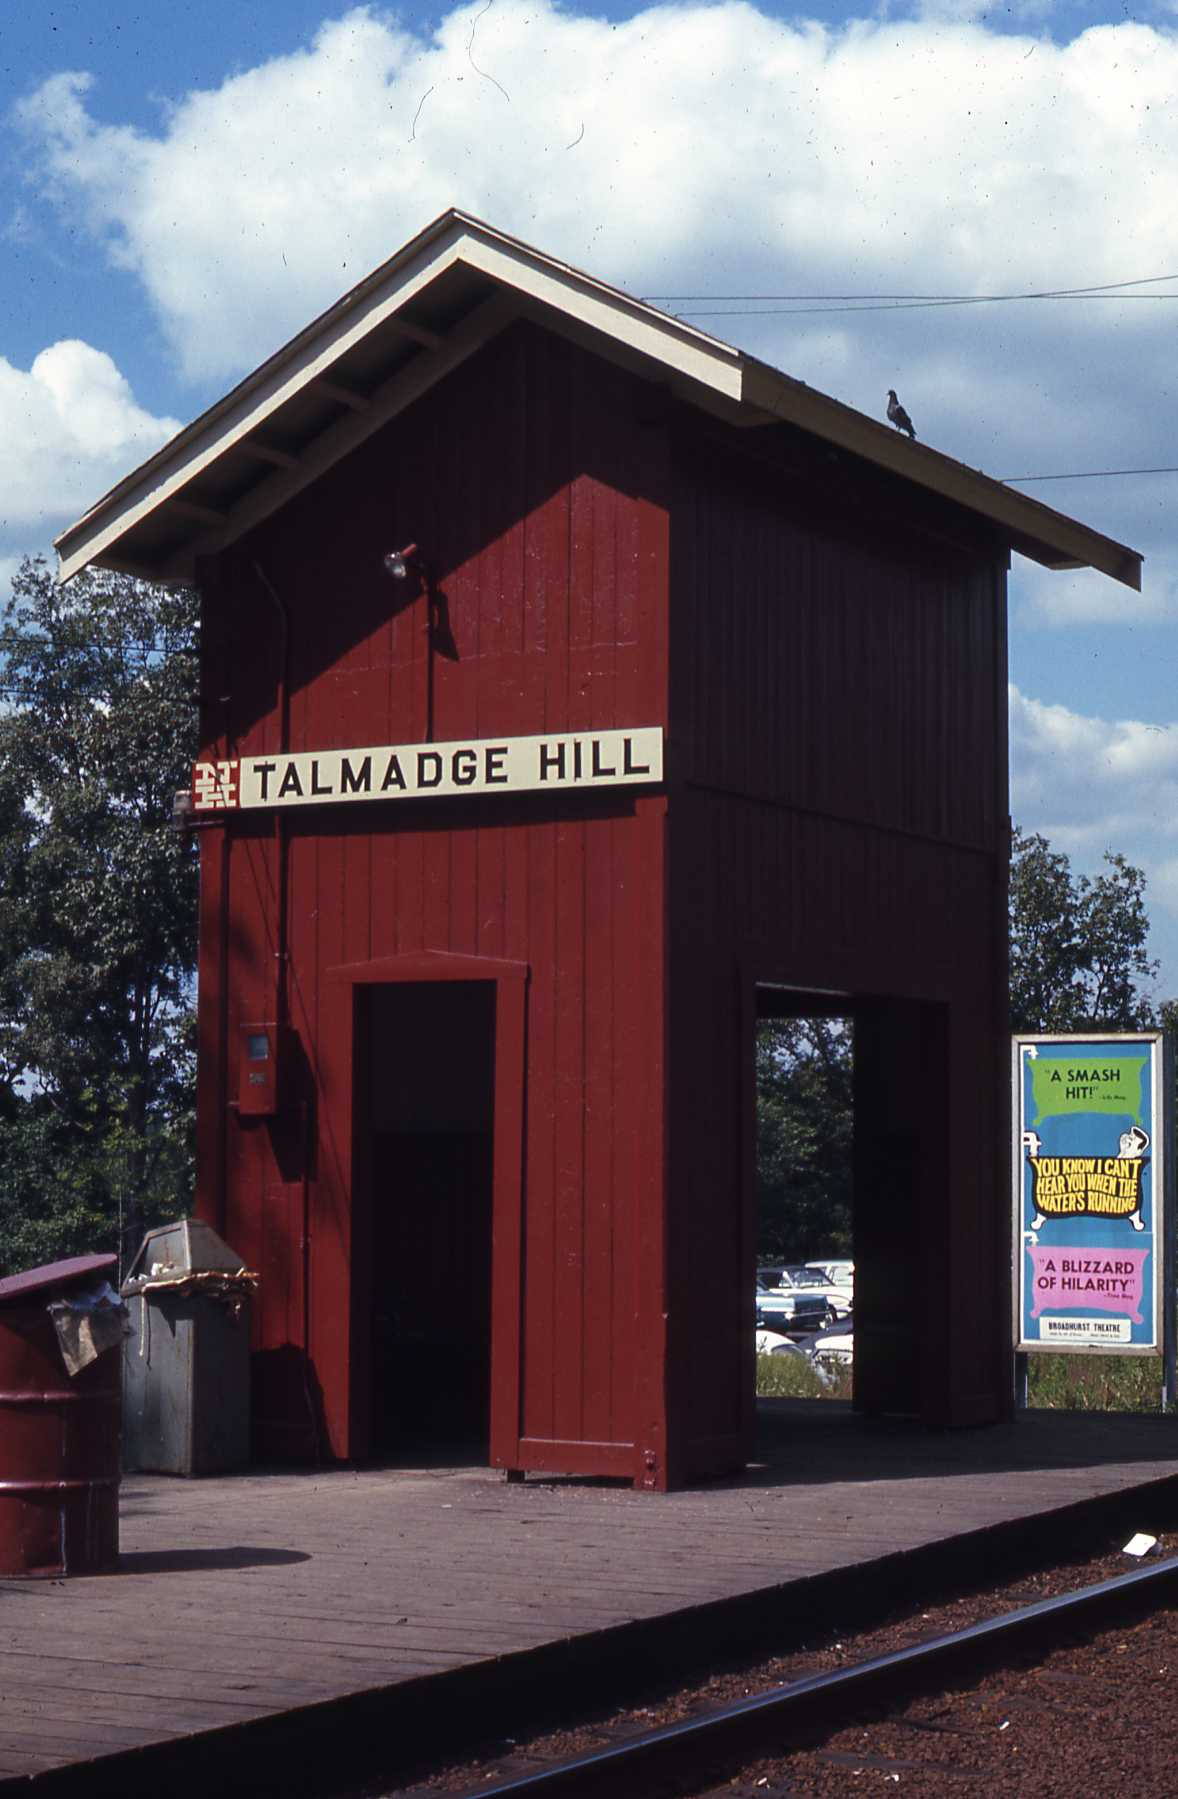 Talmadge Hill Station - New Canaan, Connecticut - 1968